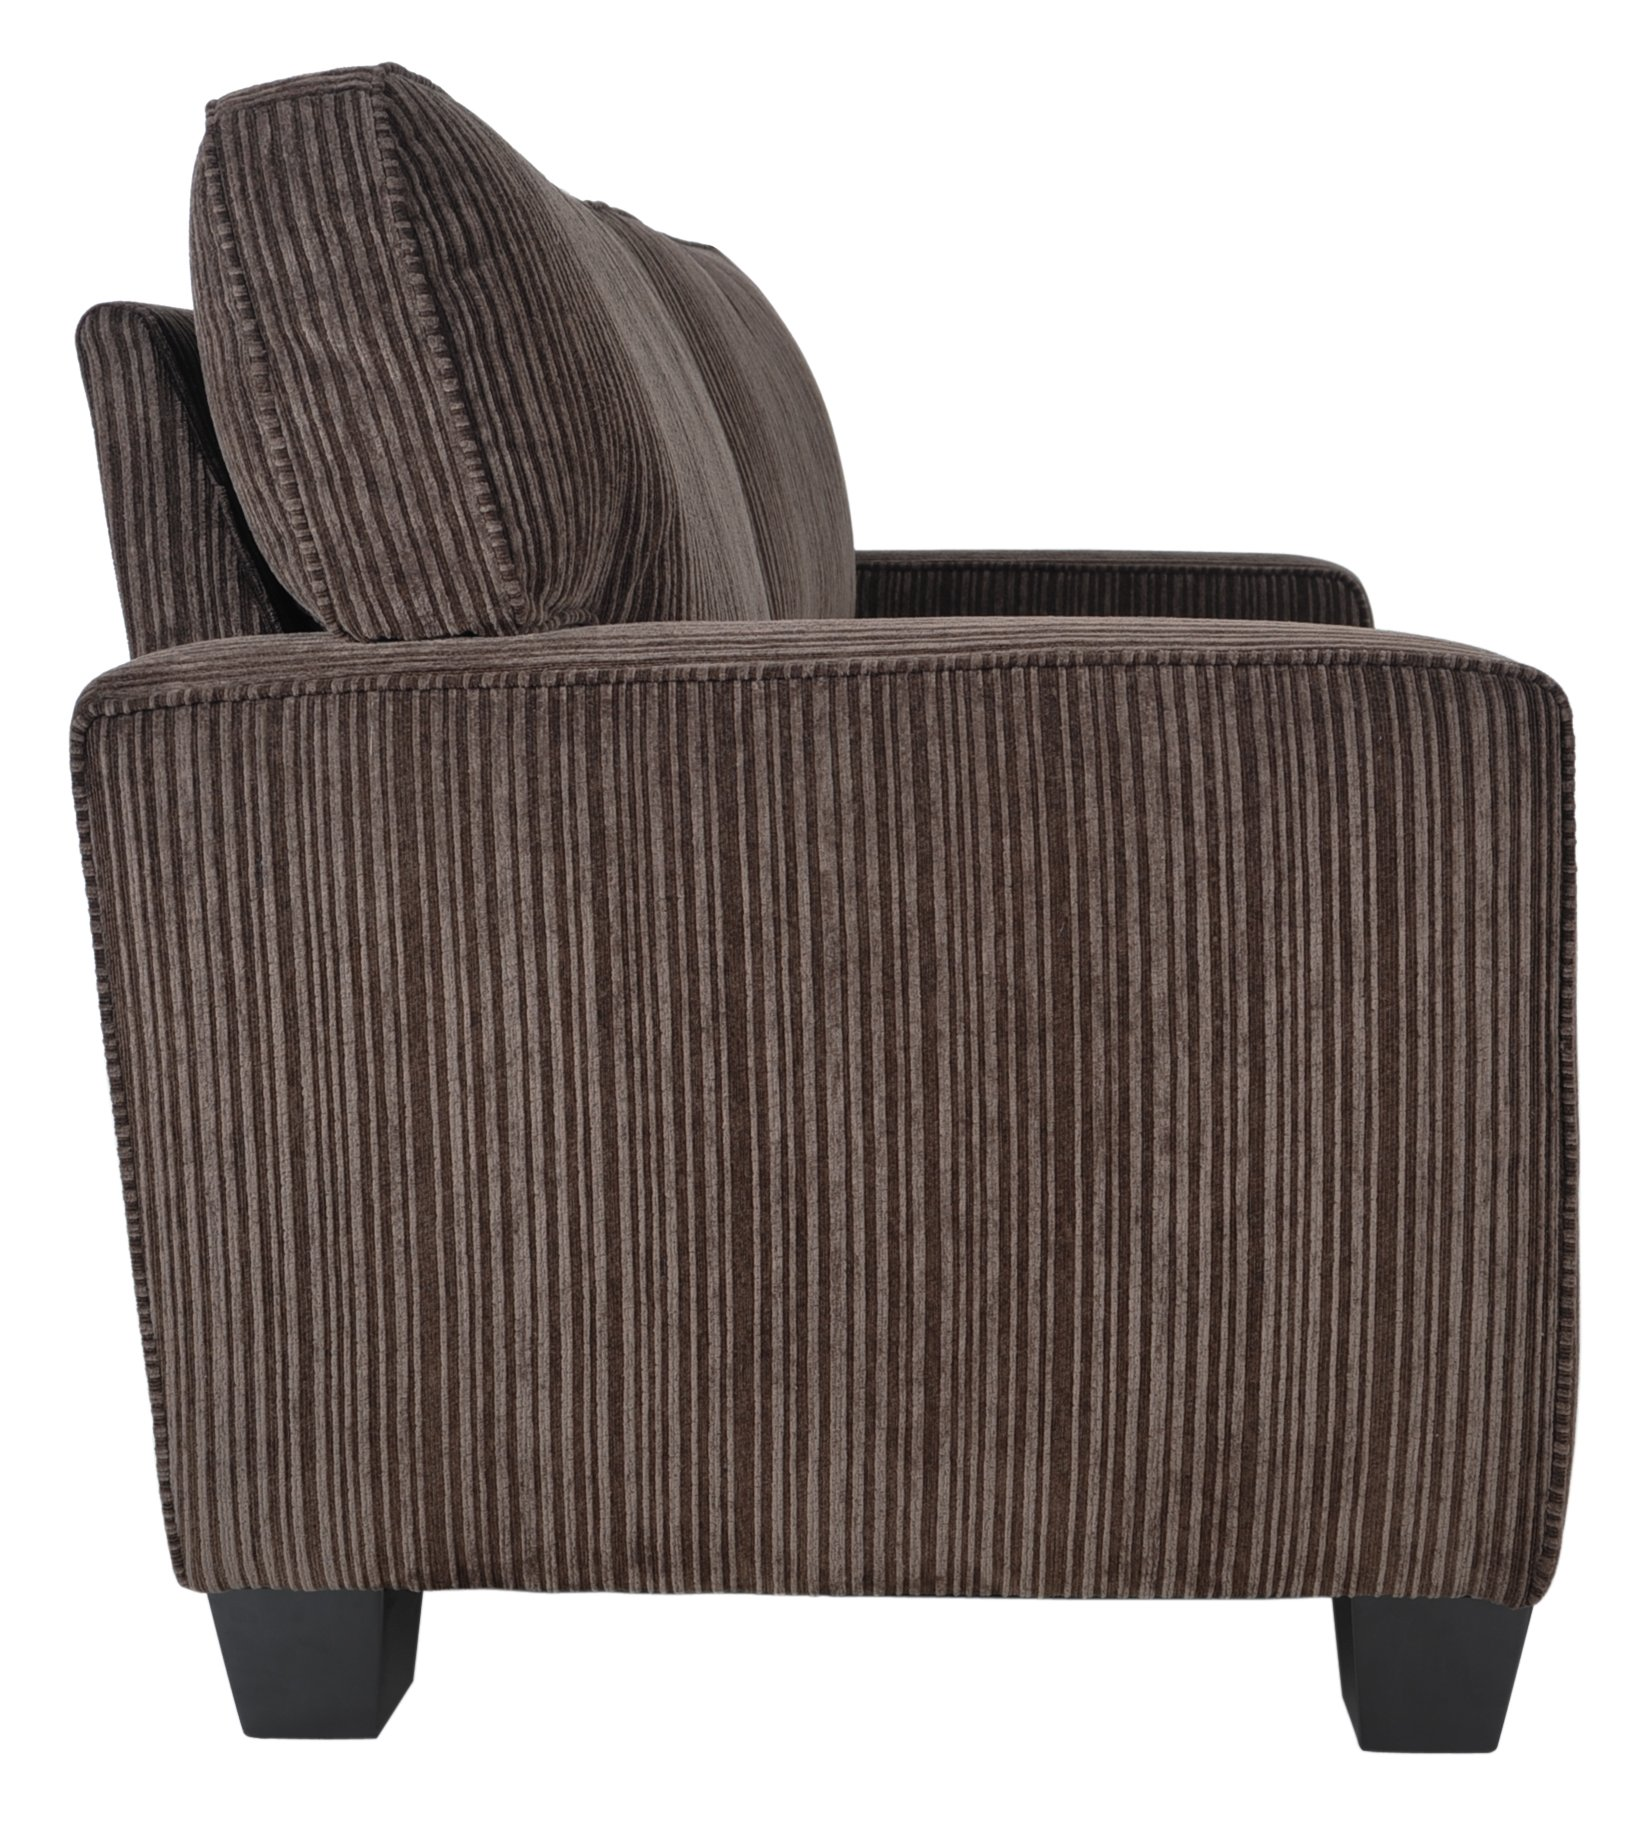 Serta RTA Palisades Collection 61'' Loveseat in Riverfront Brown by Serta (Image #5)